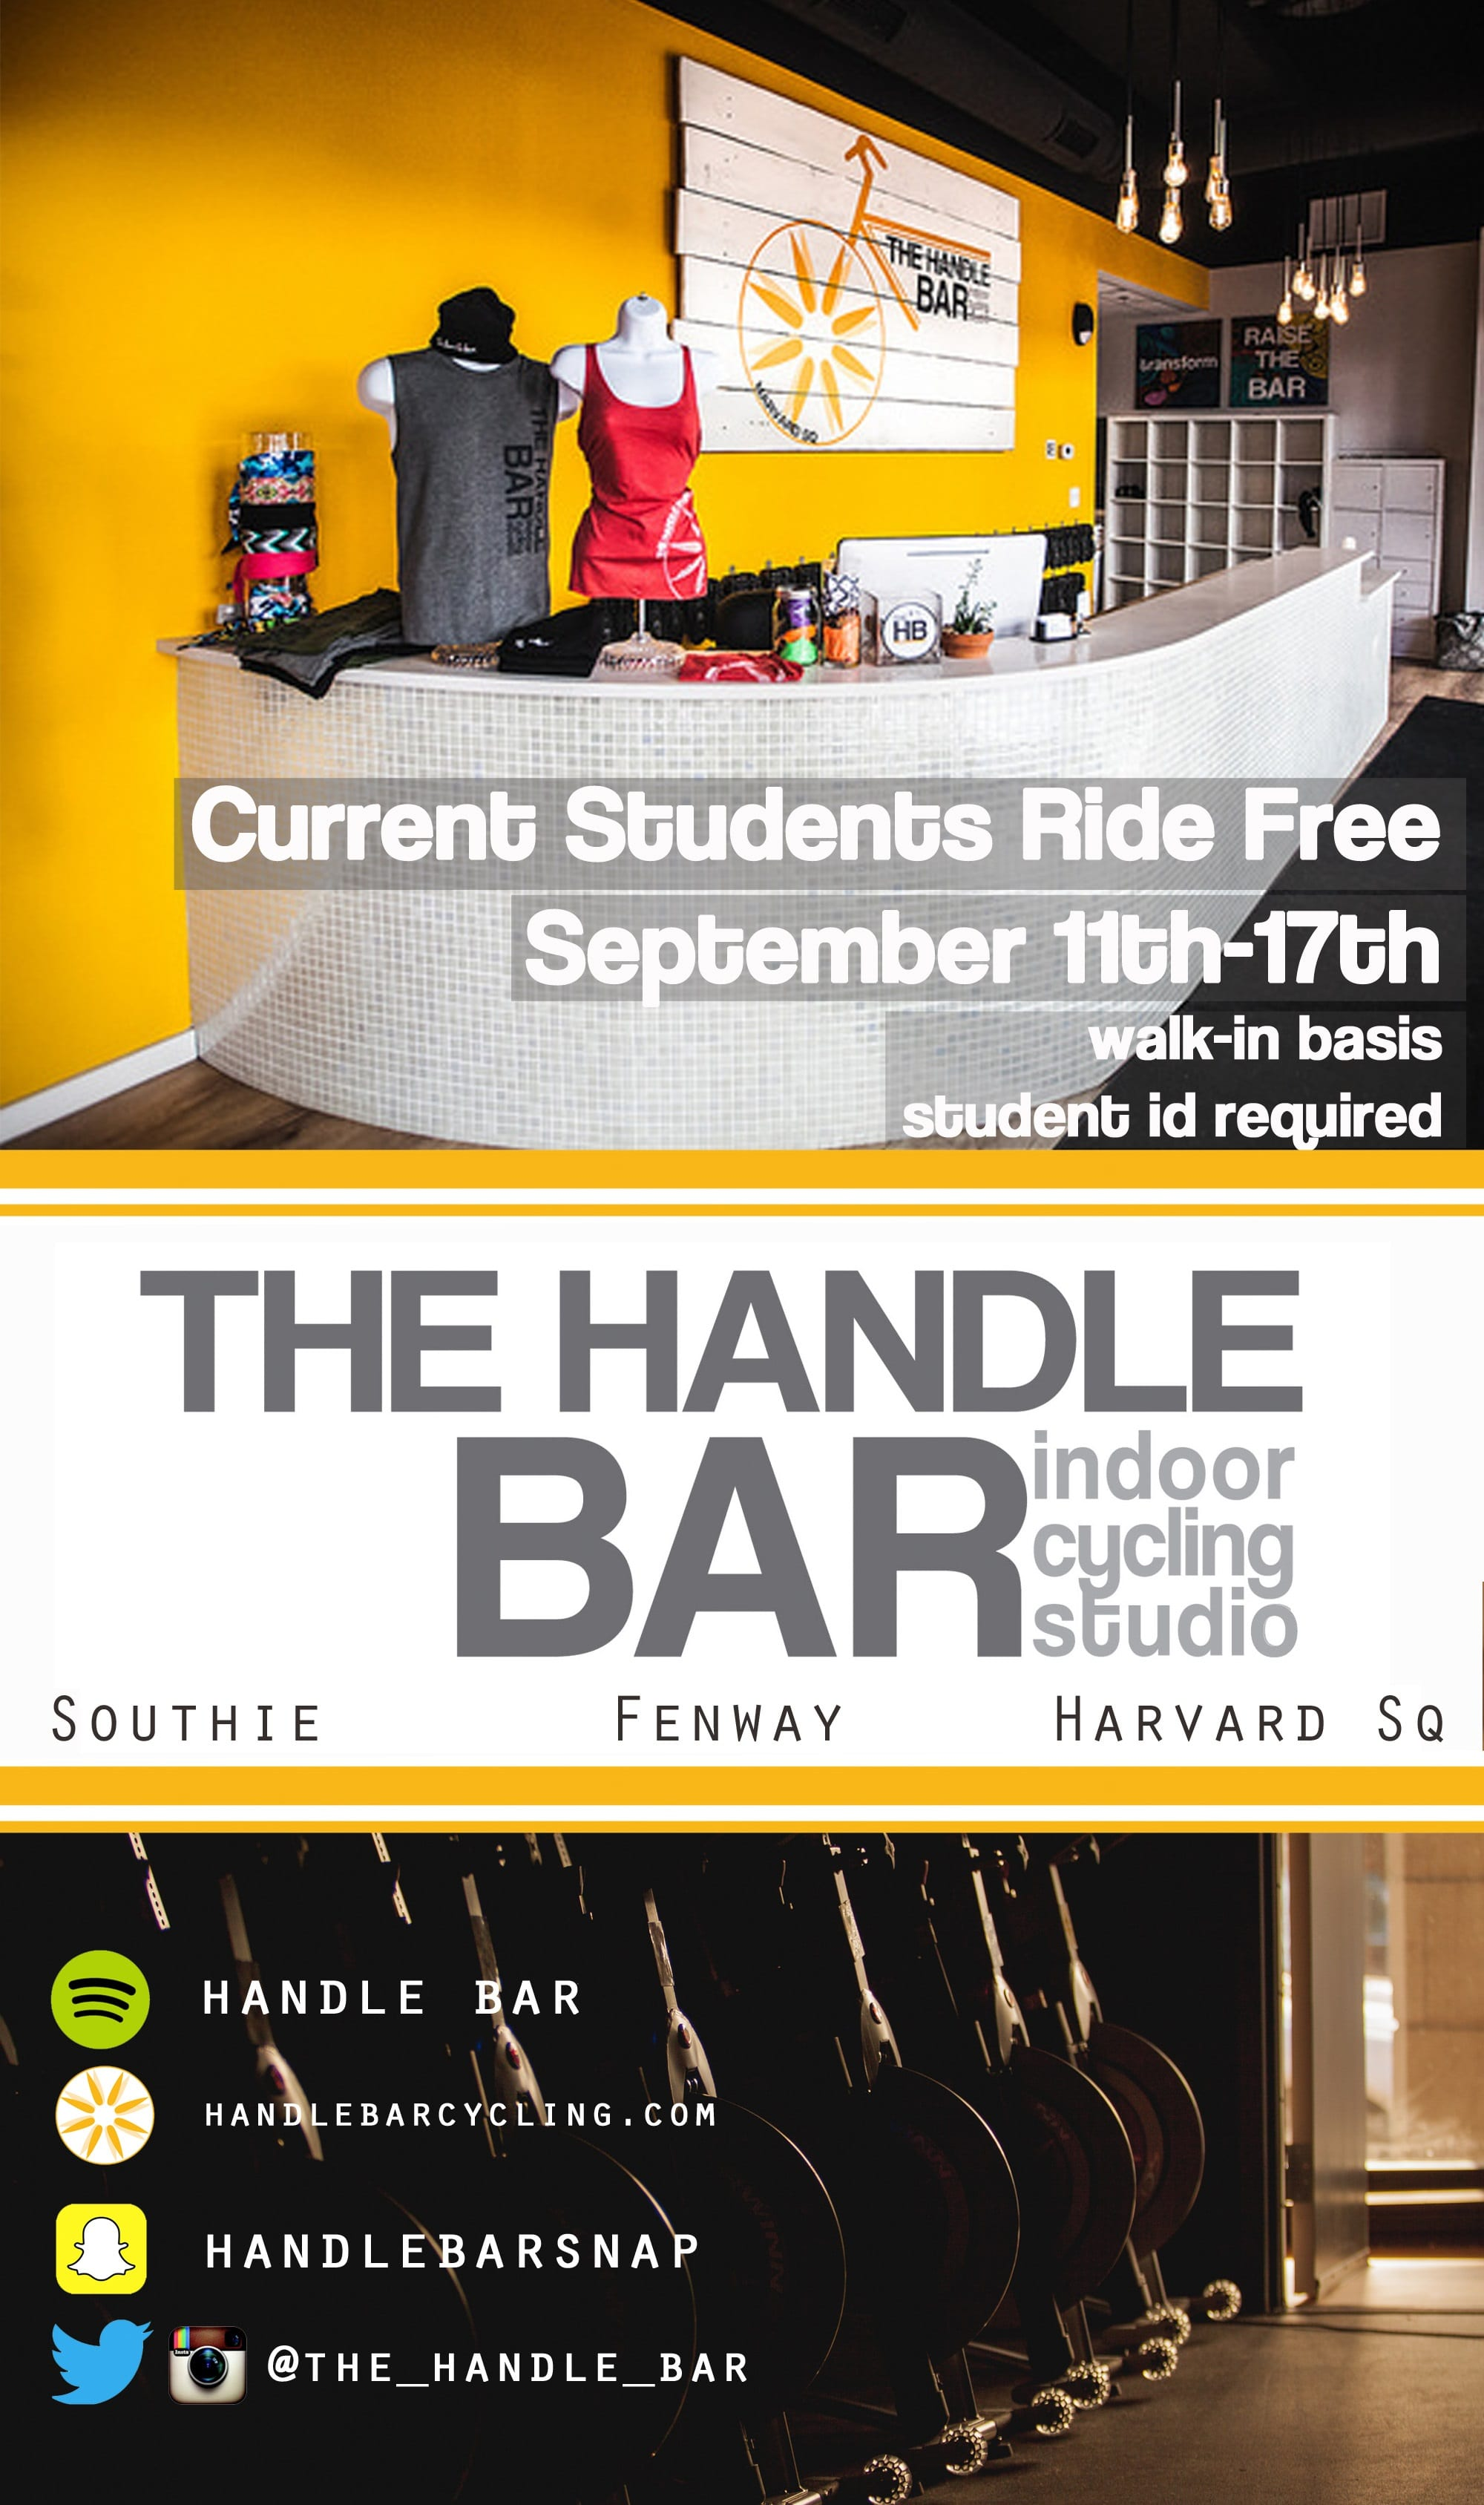 Handle Bar Boston College Promotion